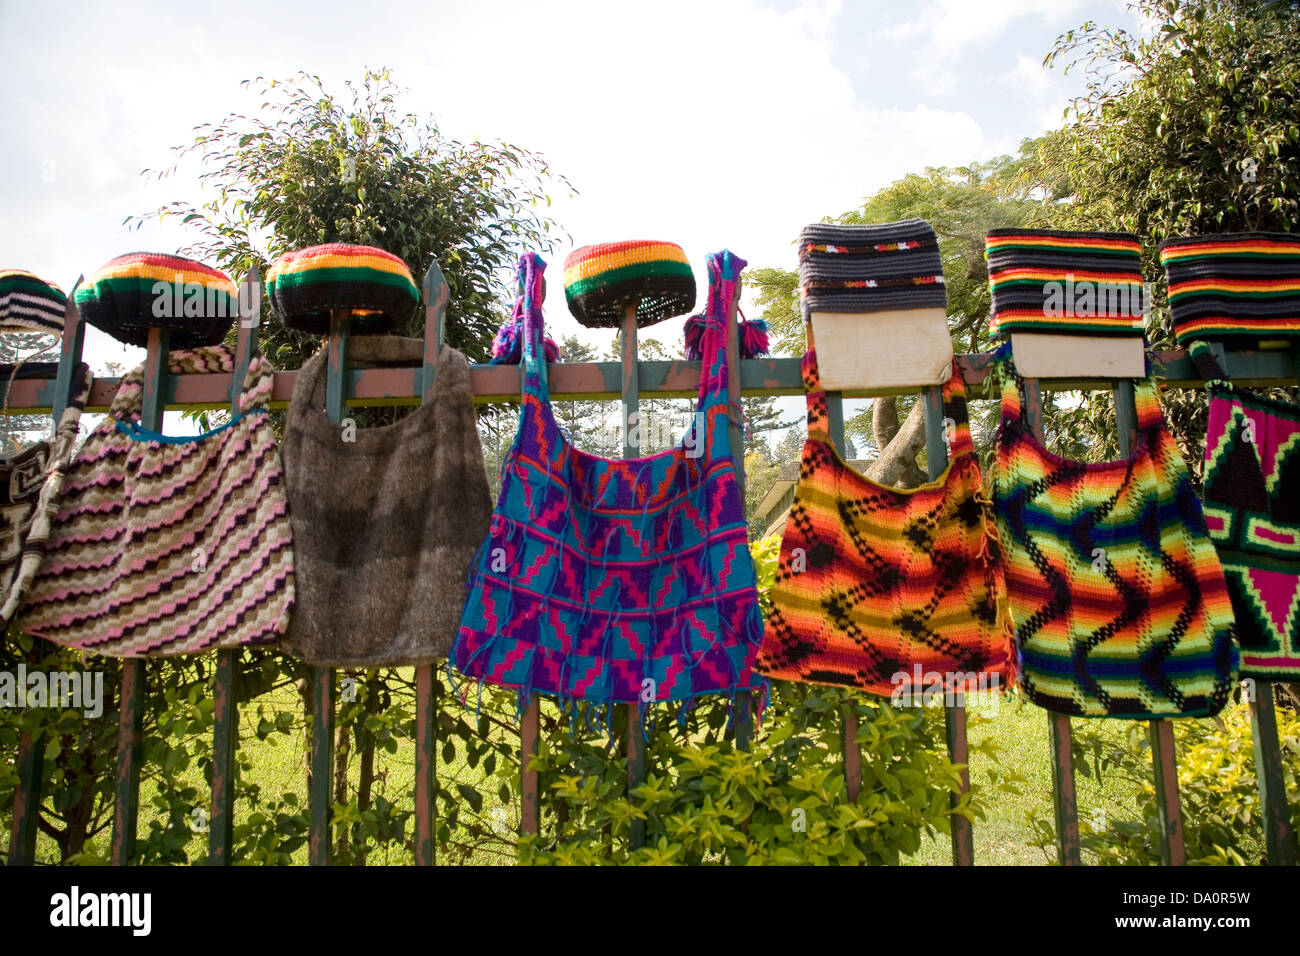 Women weave colorful bags called bilums in Goroka, Eastern Highlands Province, Papua New Guinea. - Stock Image